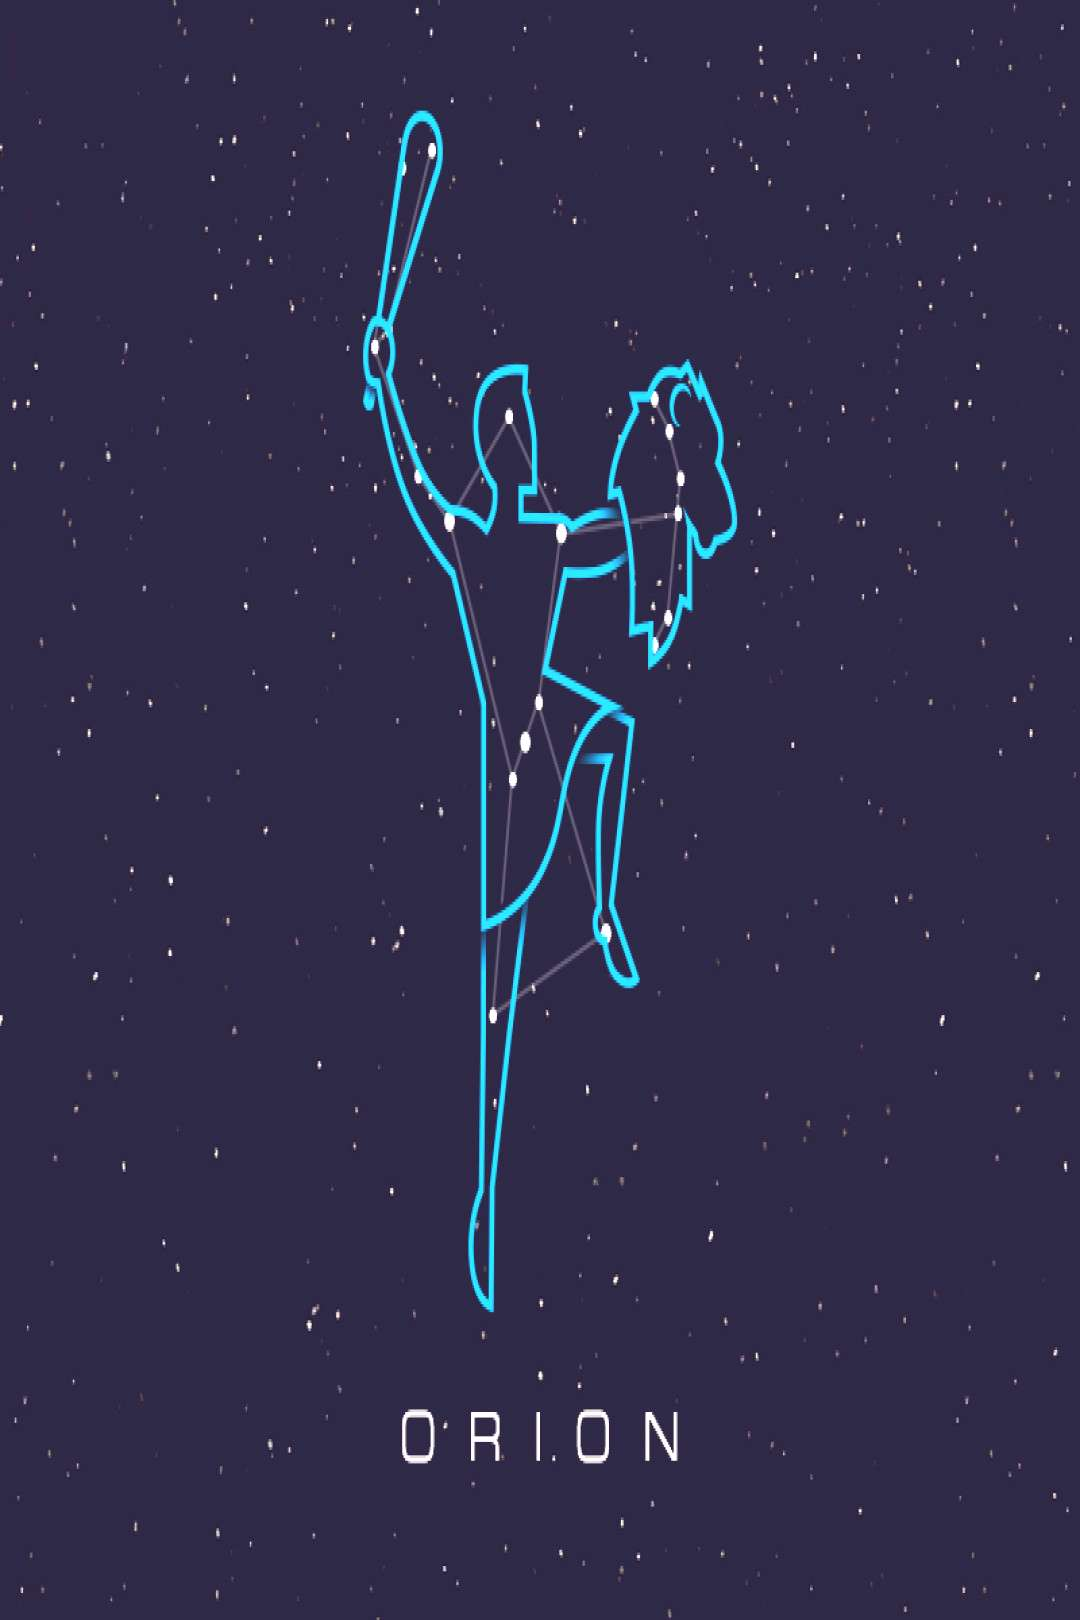 Constellations - Orion,  Constellations - Orion,